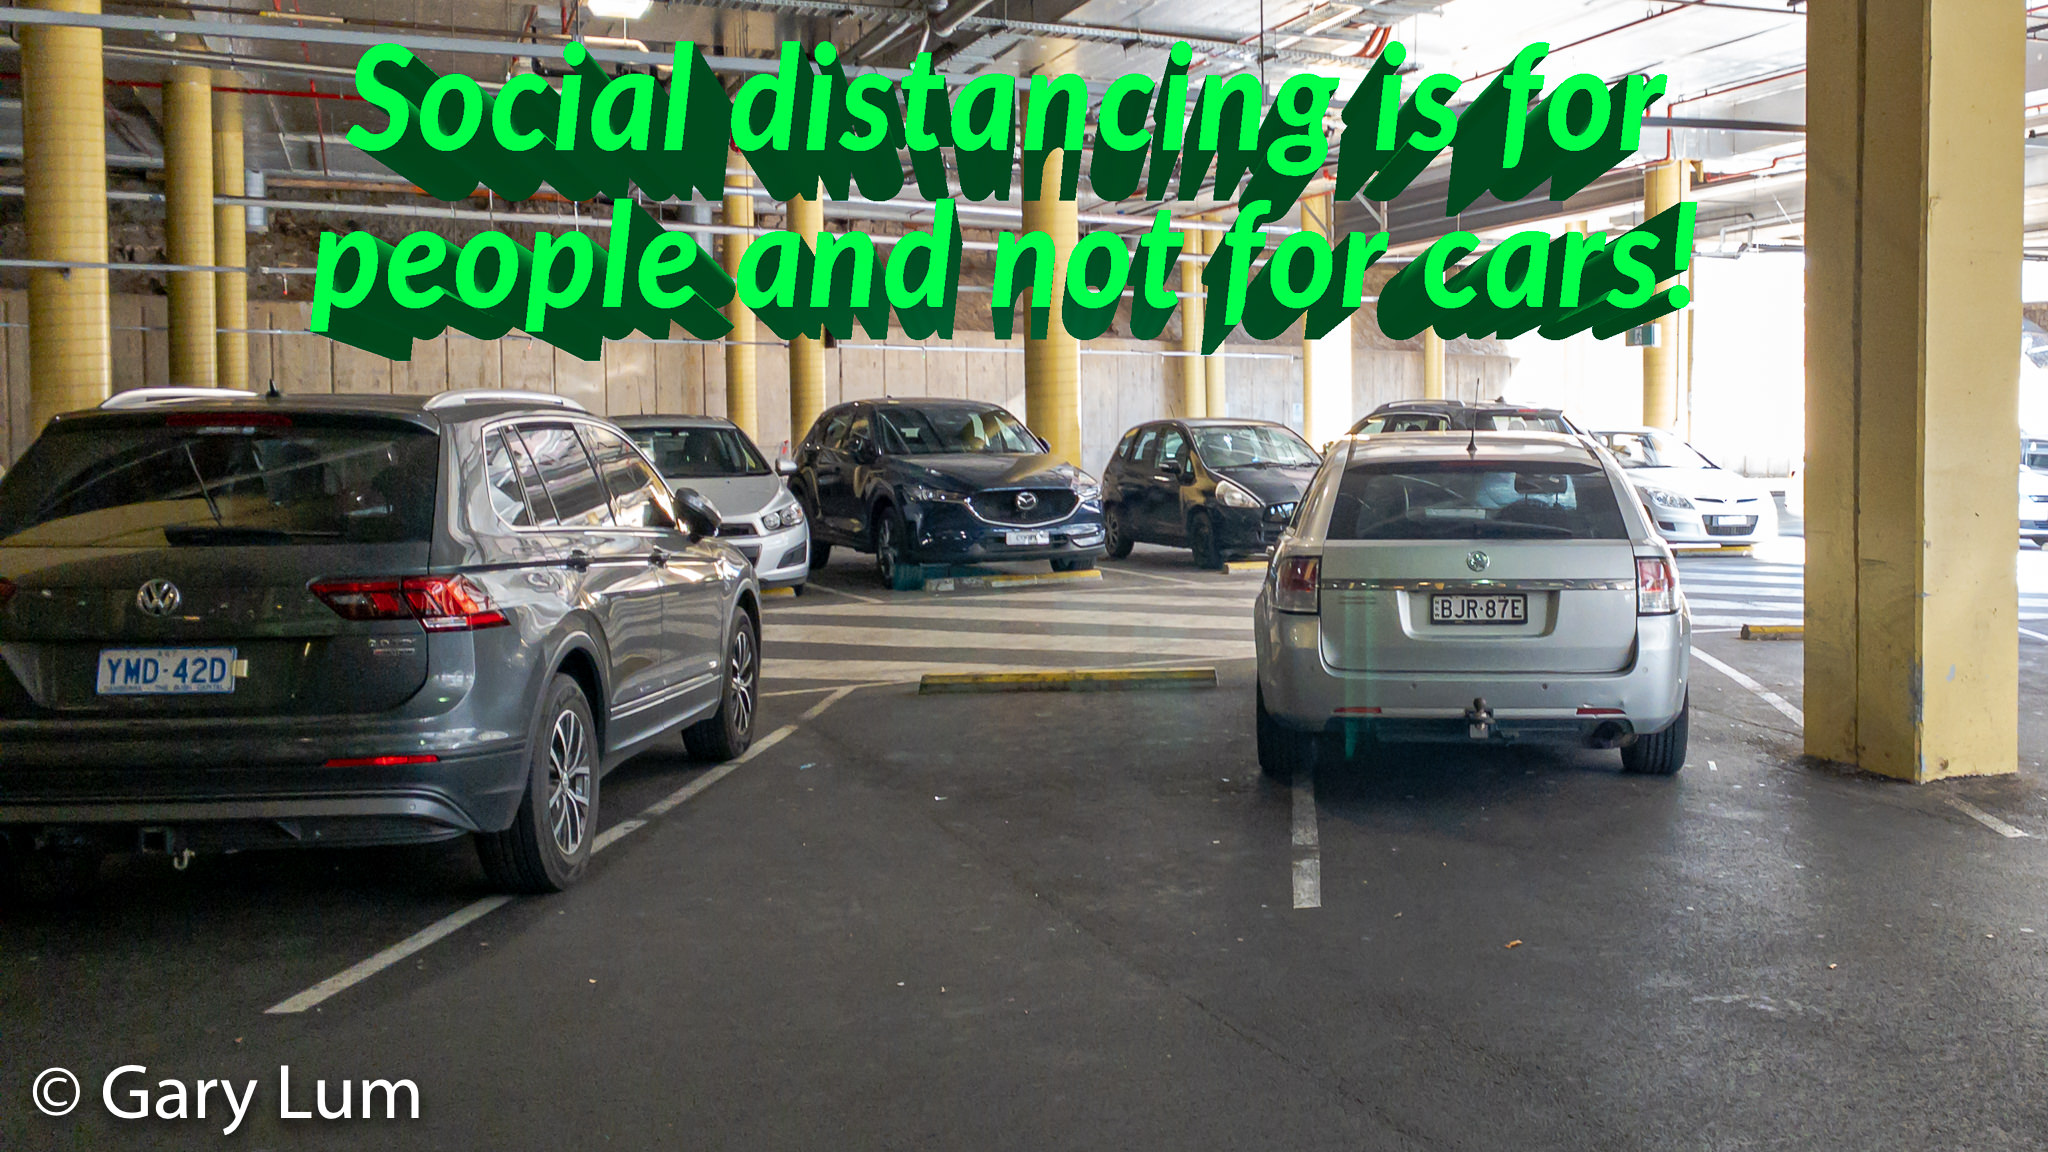 Physical distancing or social distancing